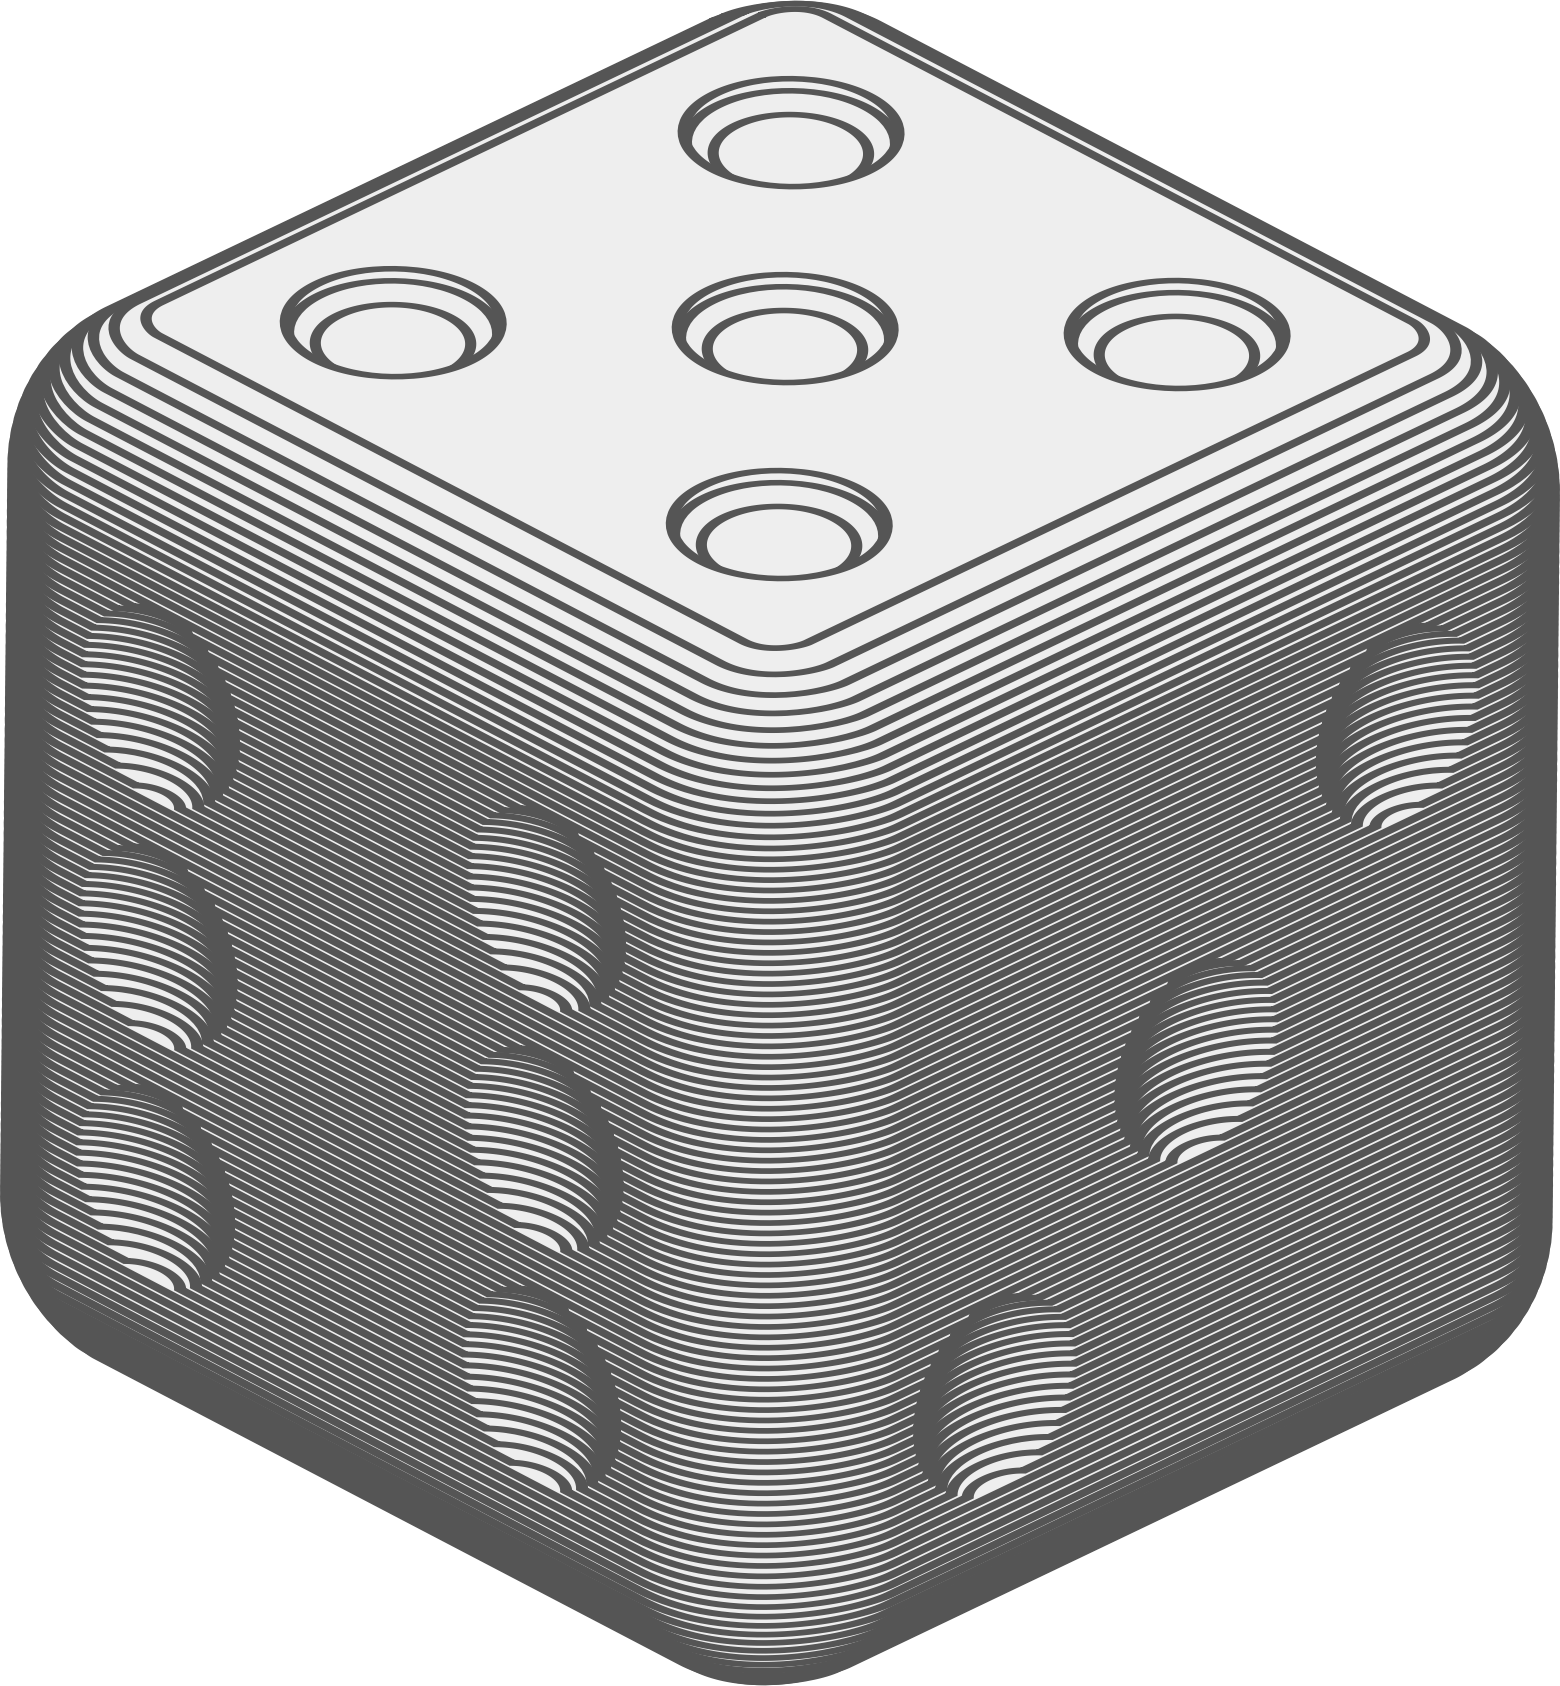 Dice clipart 3d dice. Animated die big image